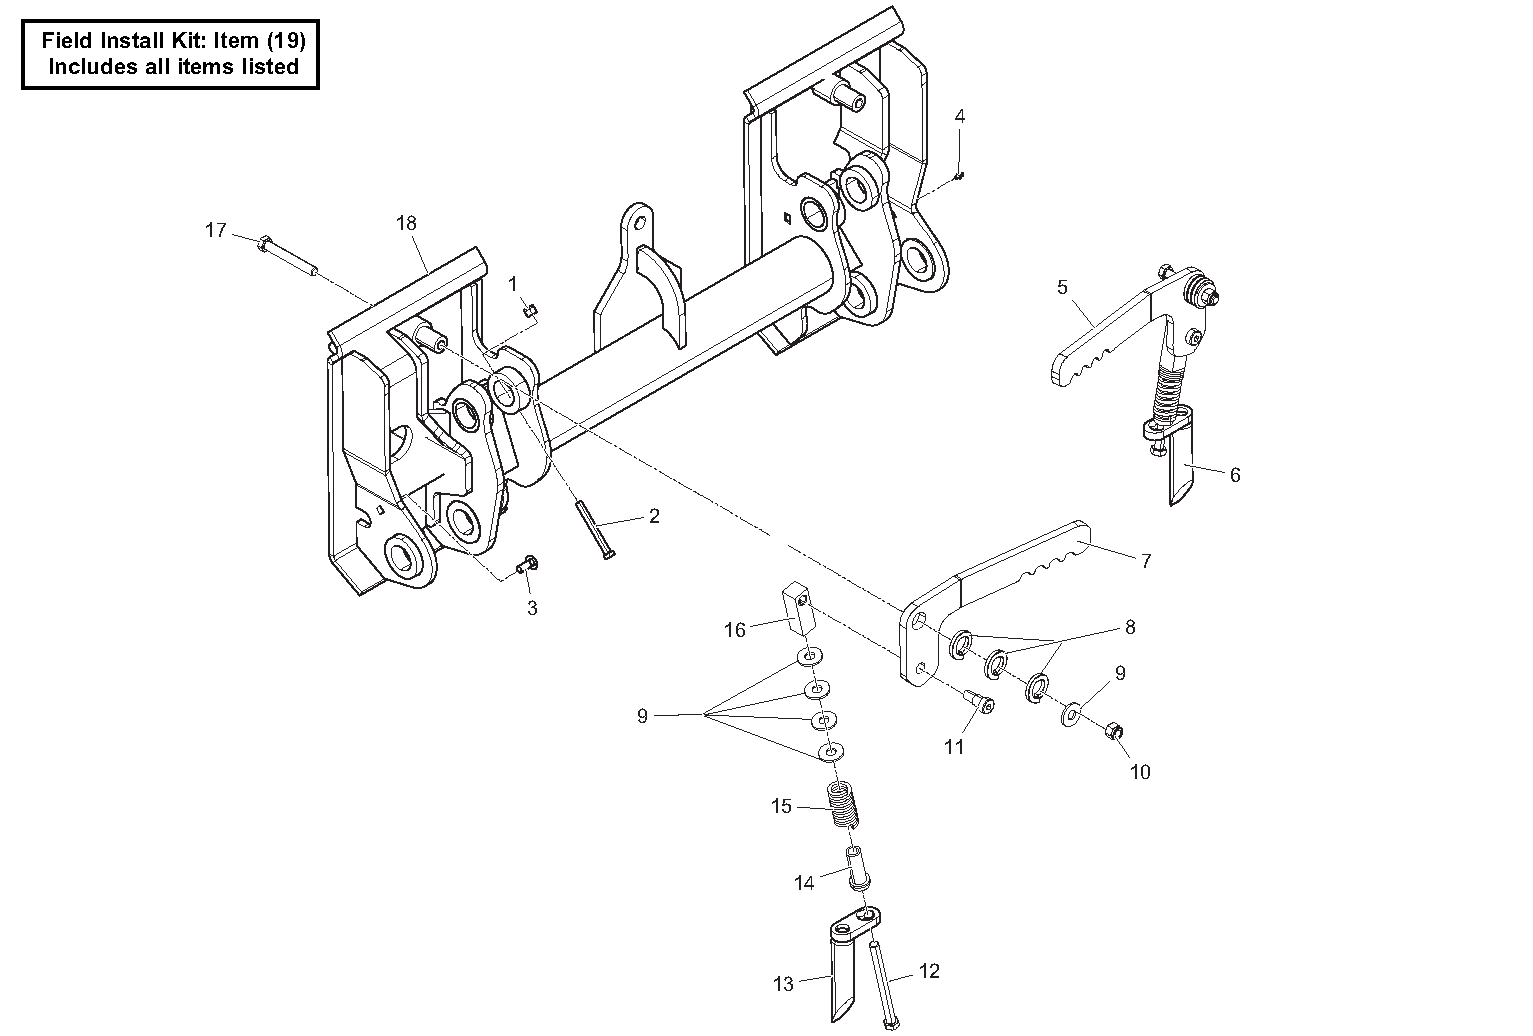 Diagram 25-B Manual Quick Attach Assembly